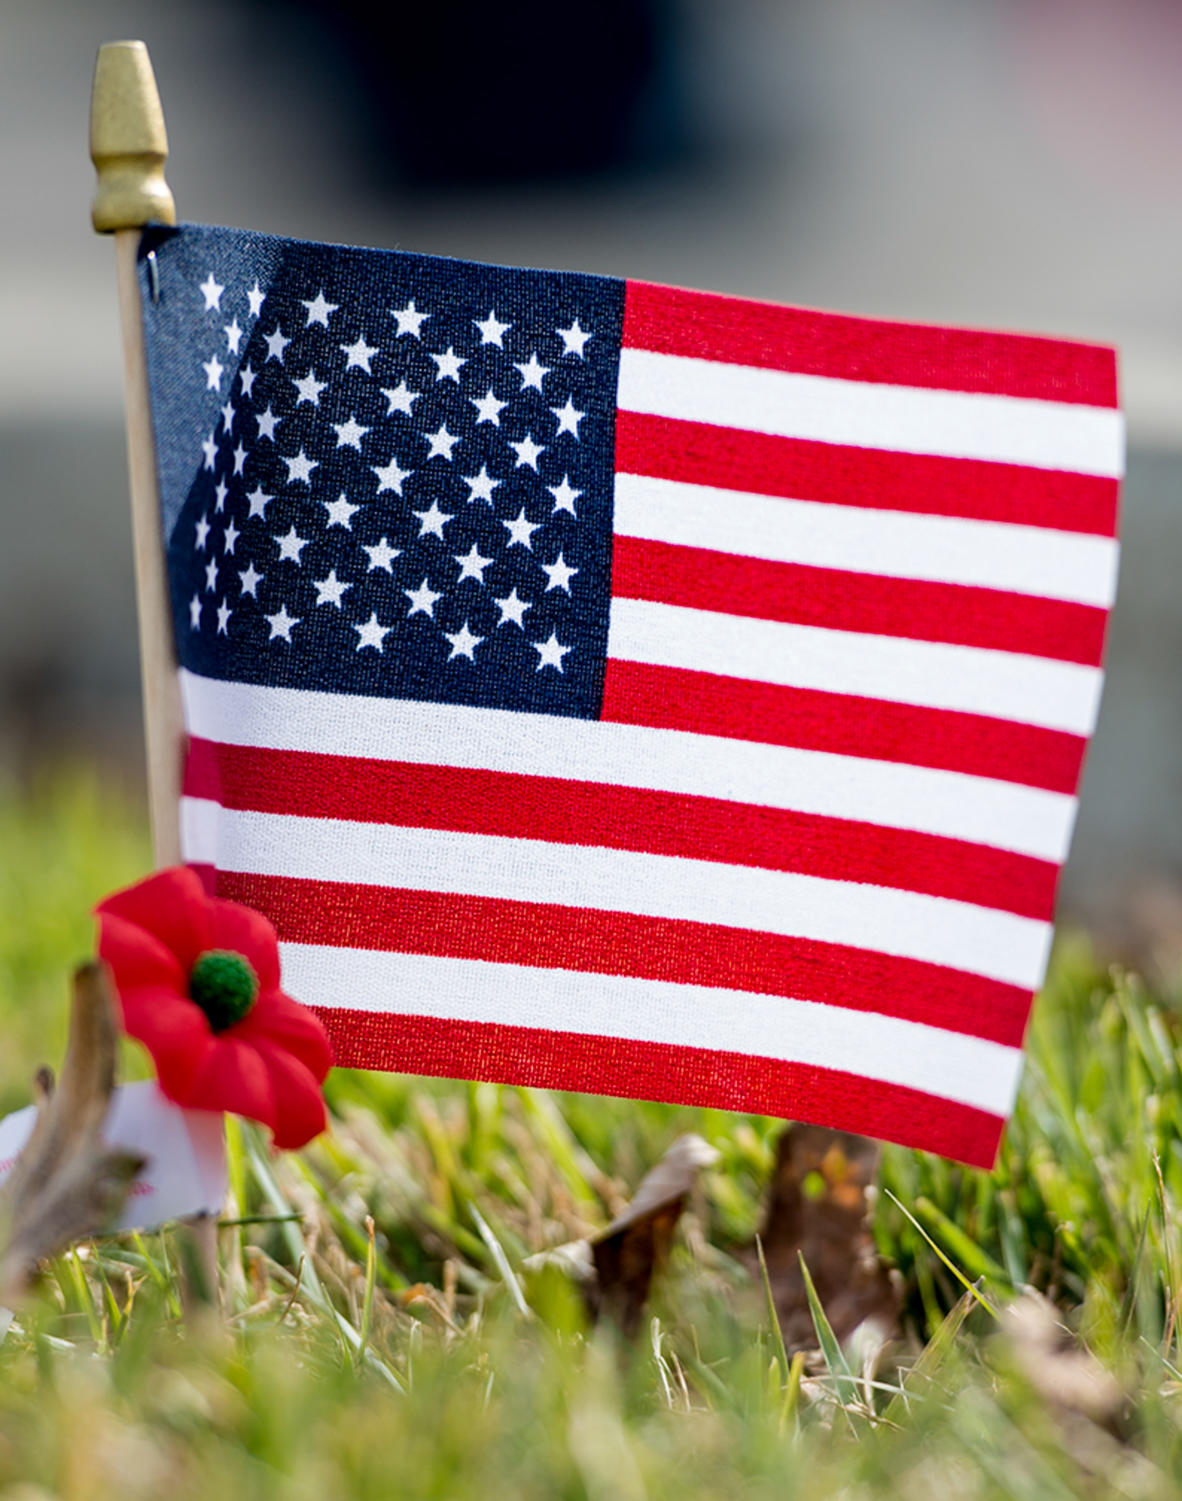 Gallery veterans day celebrations across southern illinois daily an american flag and a poppy are pictured saturday nov 11 2017 during the city of anna veterans day parade mary newman marynewmande publicscrutiny Gallery